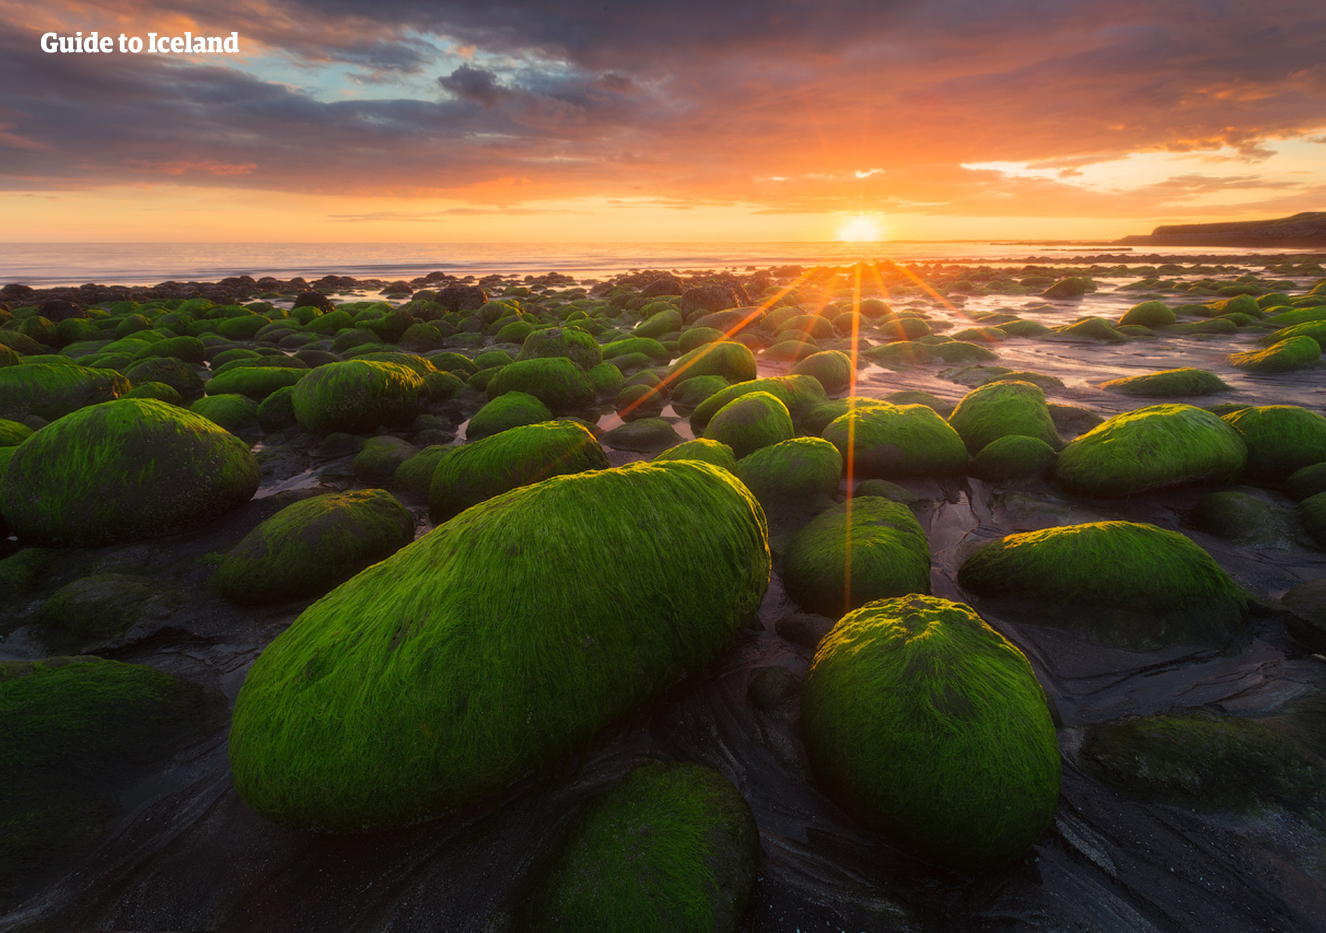 A sunset over a beach on the Reykjanes peninsula in Iceland